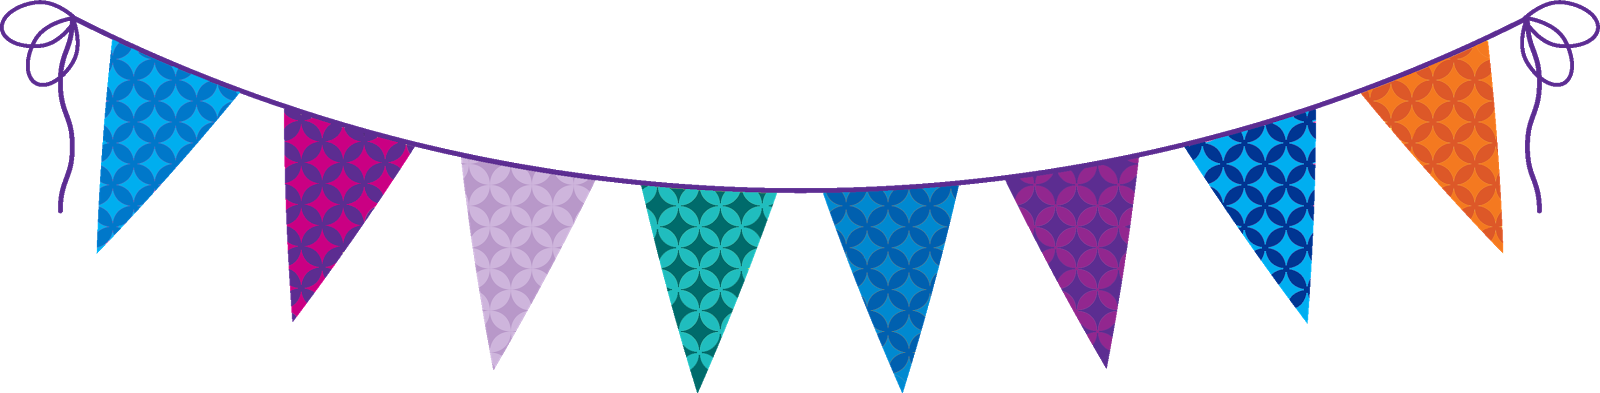 Streamers flag